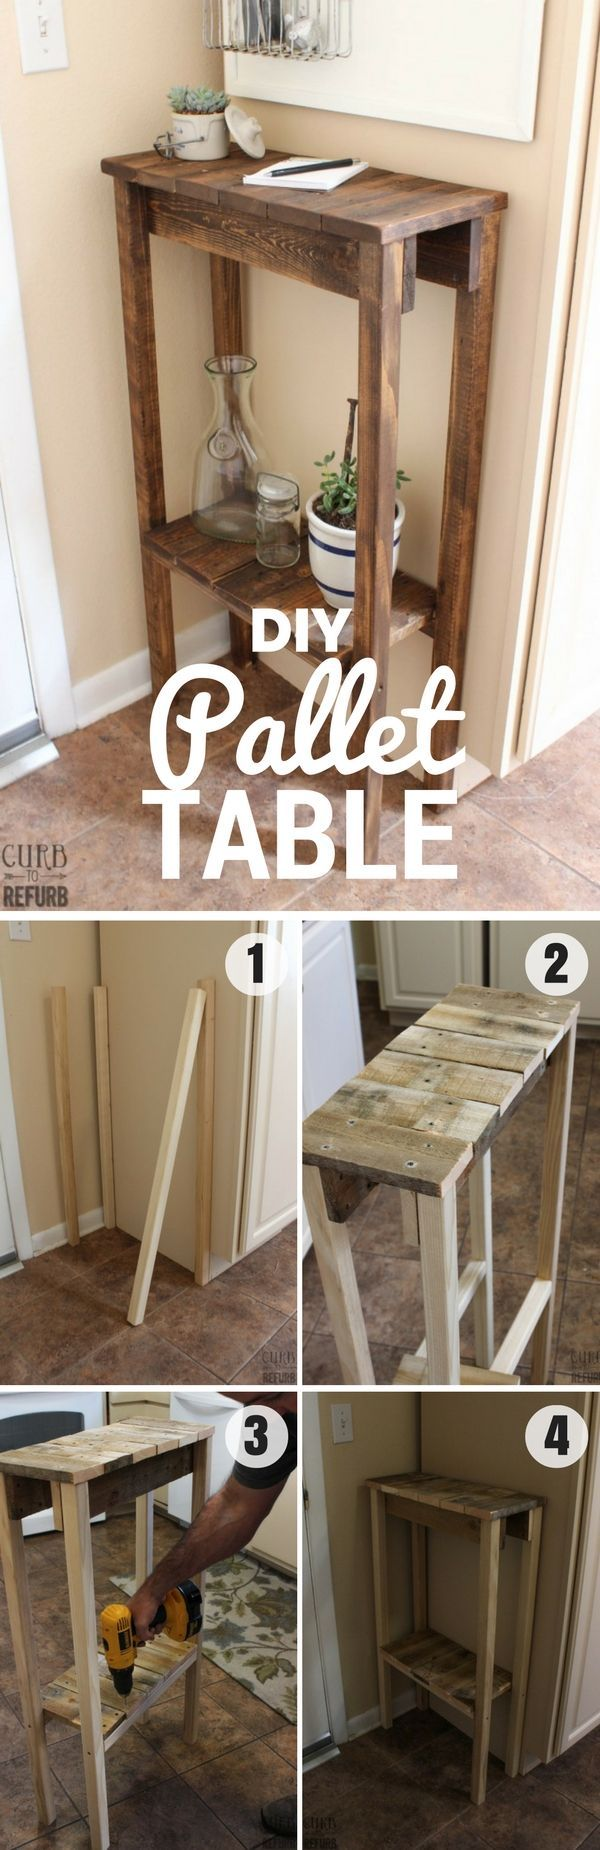 17 best ideas about diy wood on pinterest diy kitchen decor wooden laundry basket and hidden - Diy projects with wooden palletsideas easy to carry out ...